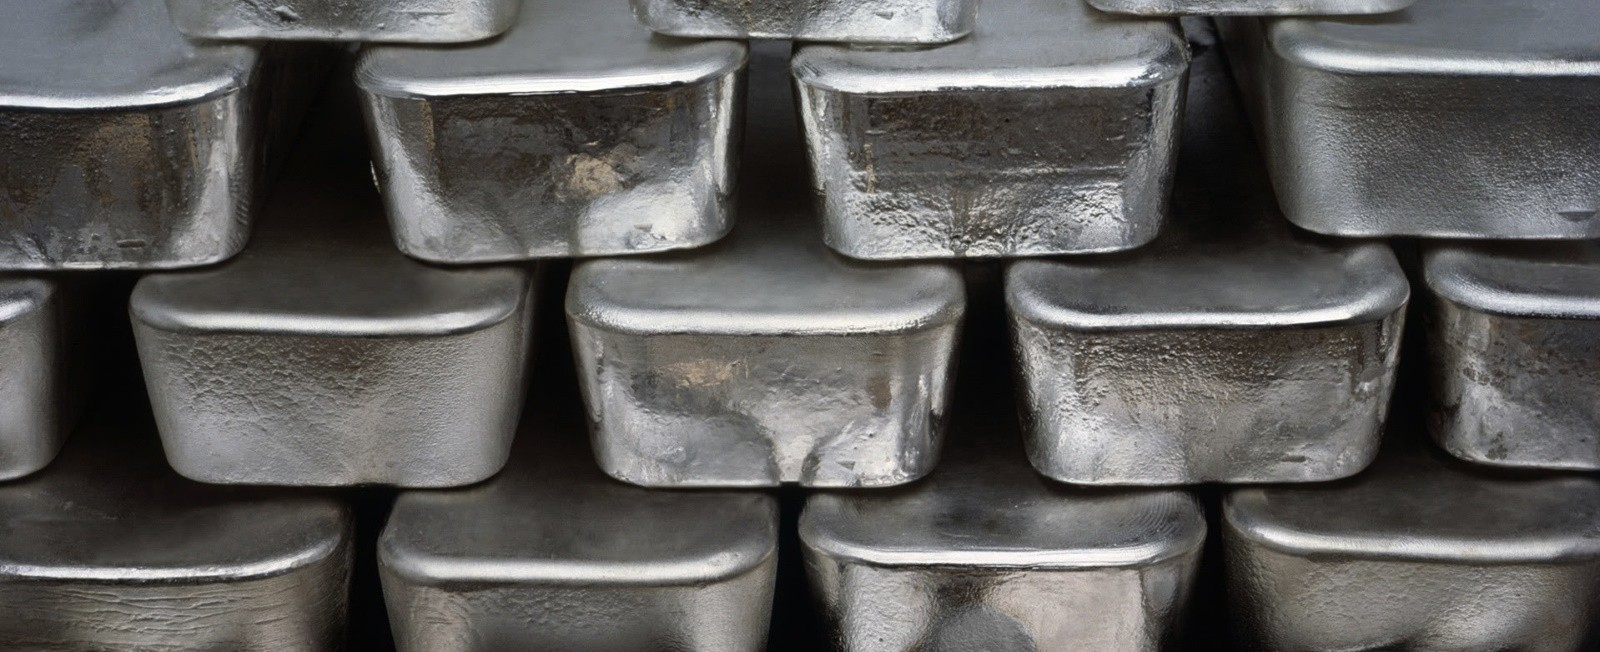 private silver ingots